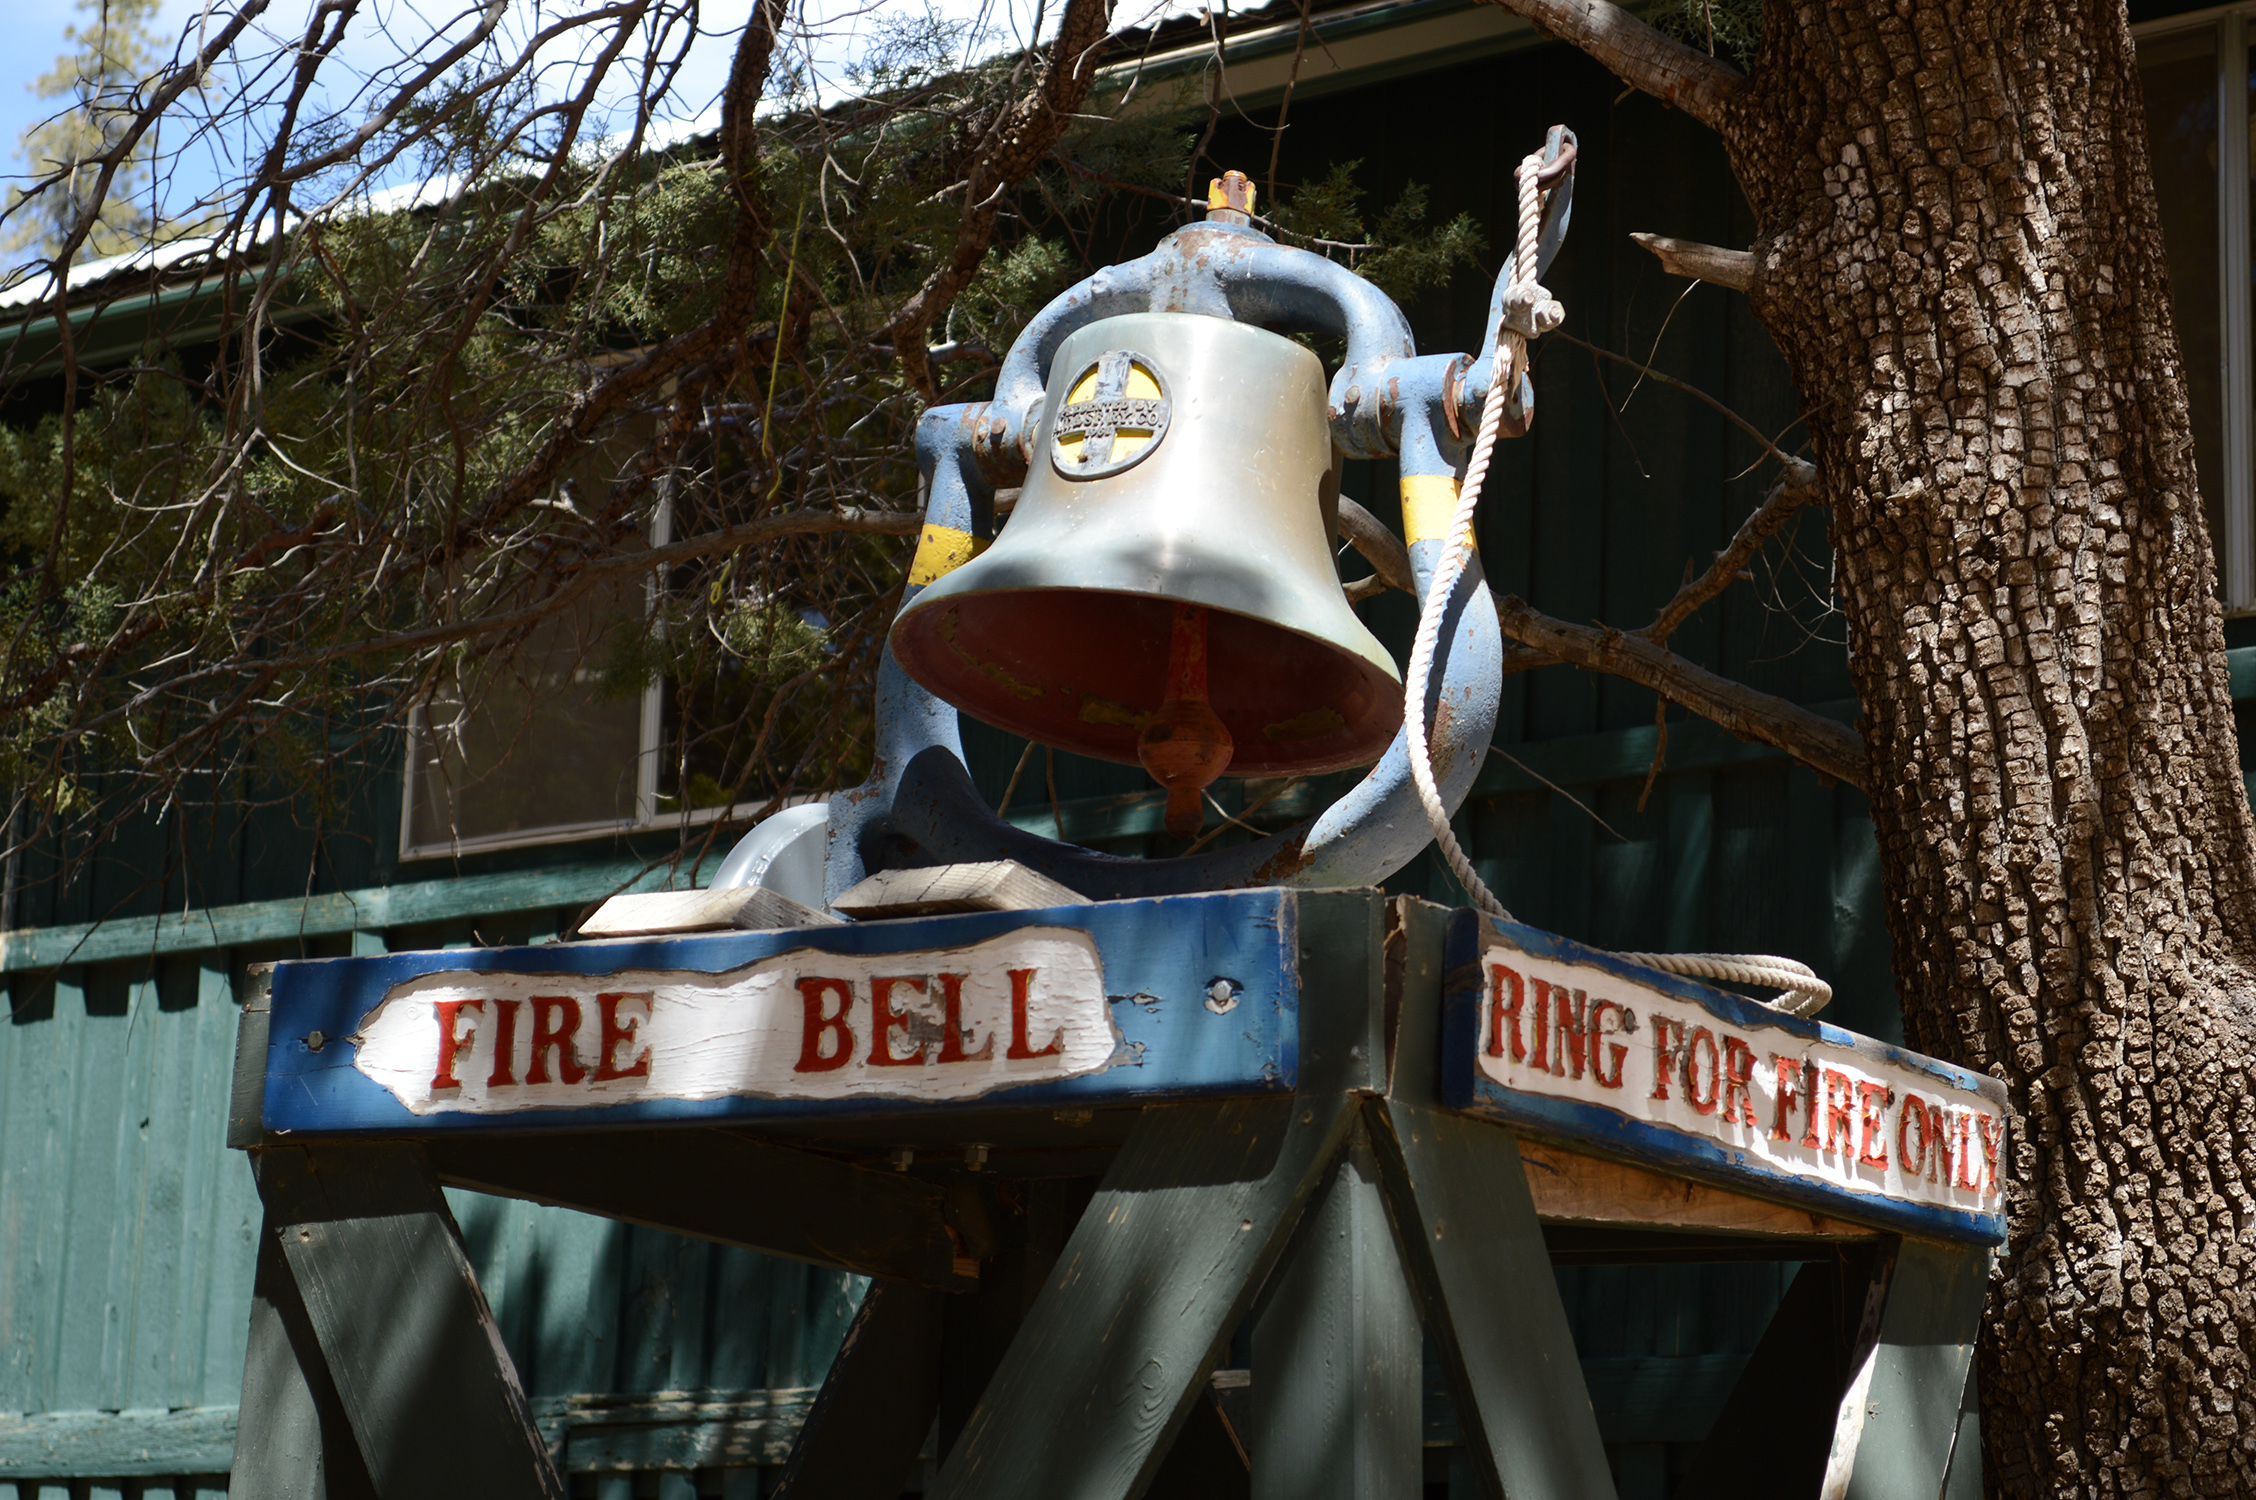 fire bell from old site 5 x 7